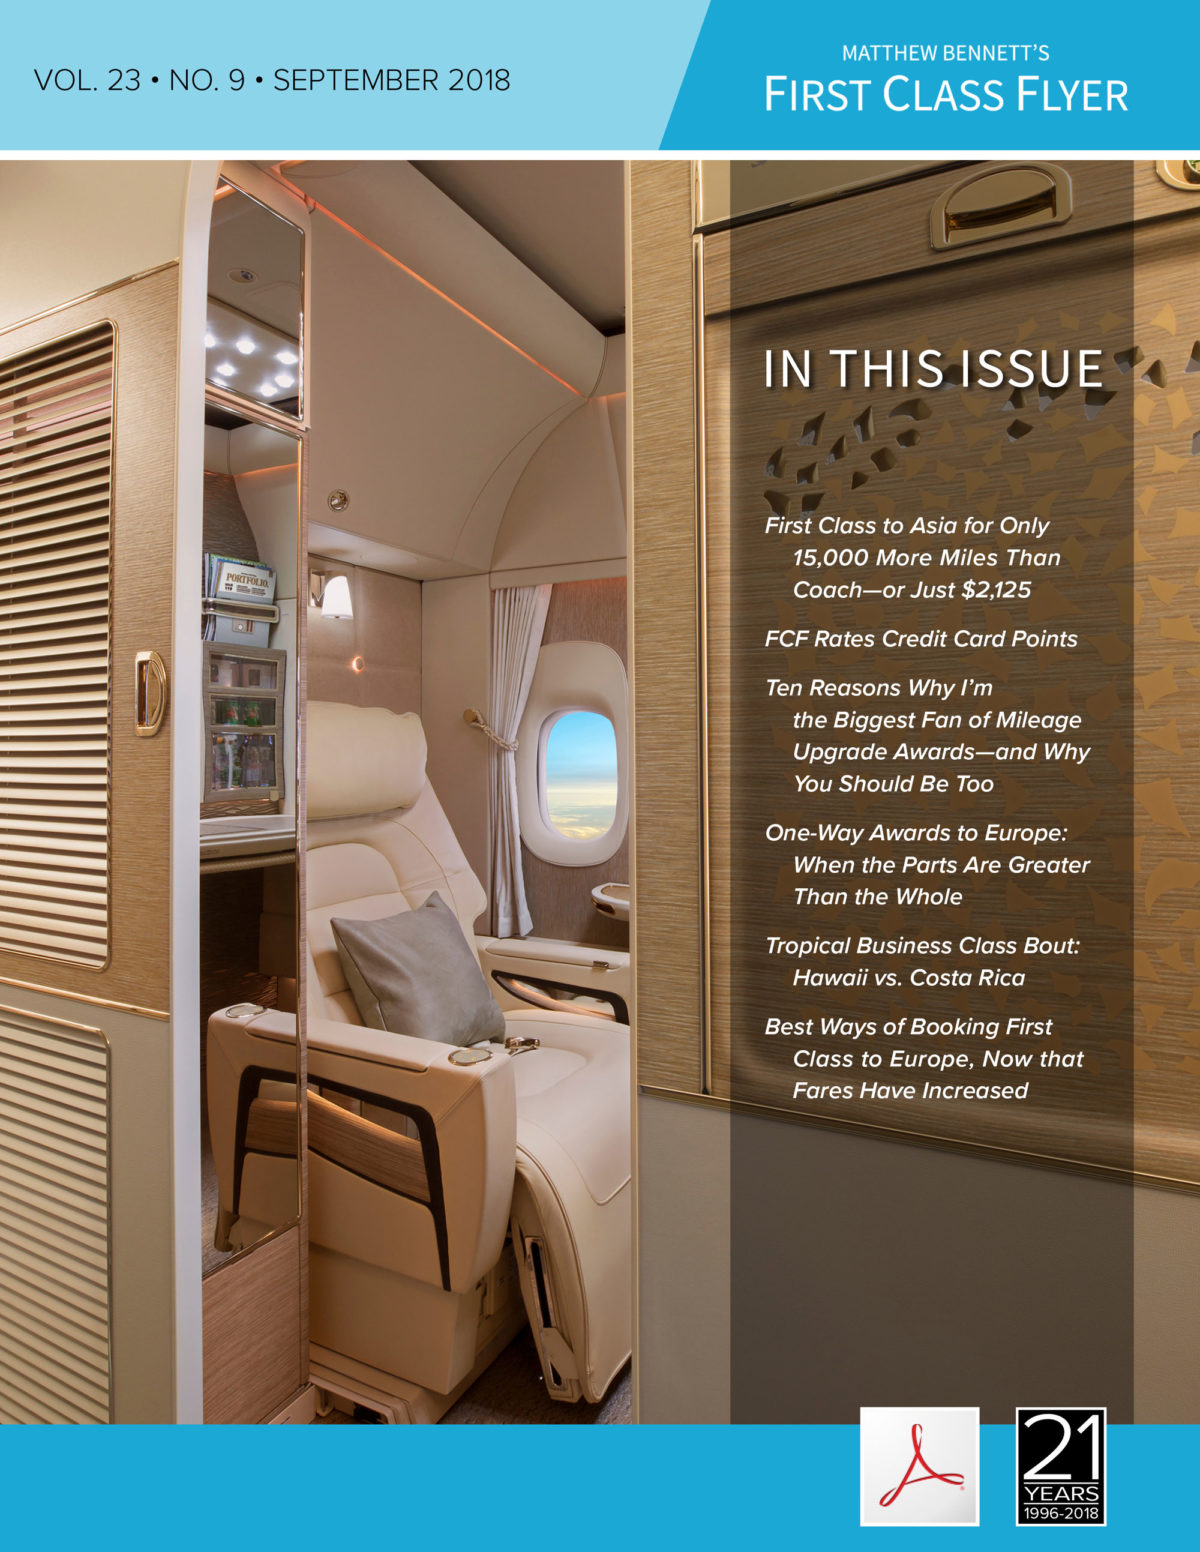 Issue Fly First Class to Europe Asia Hawaii